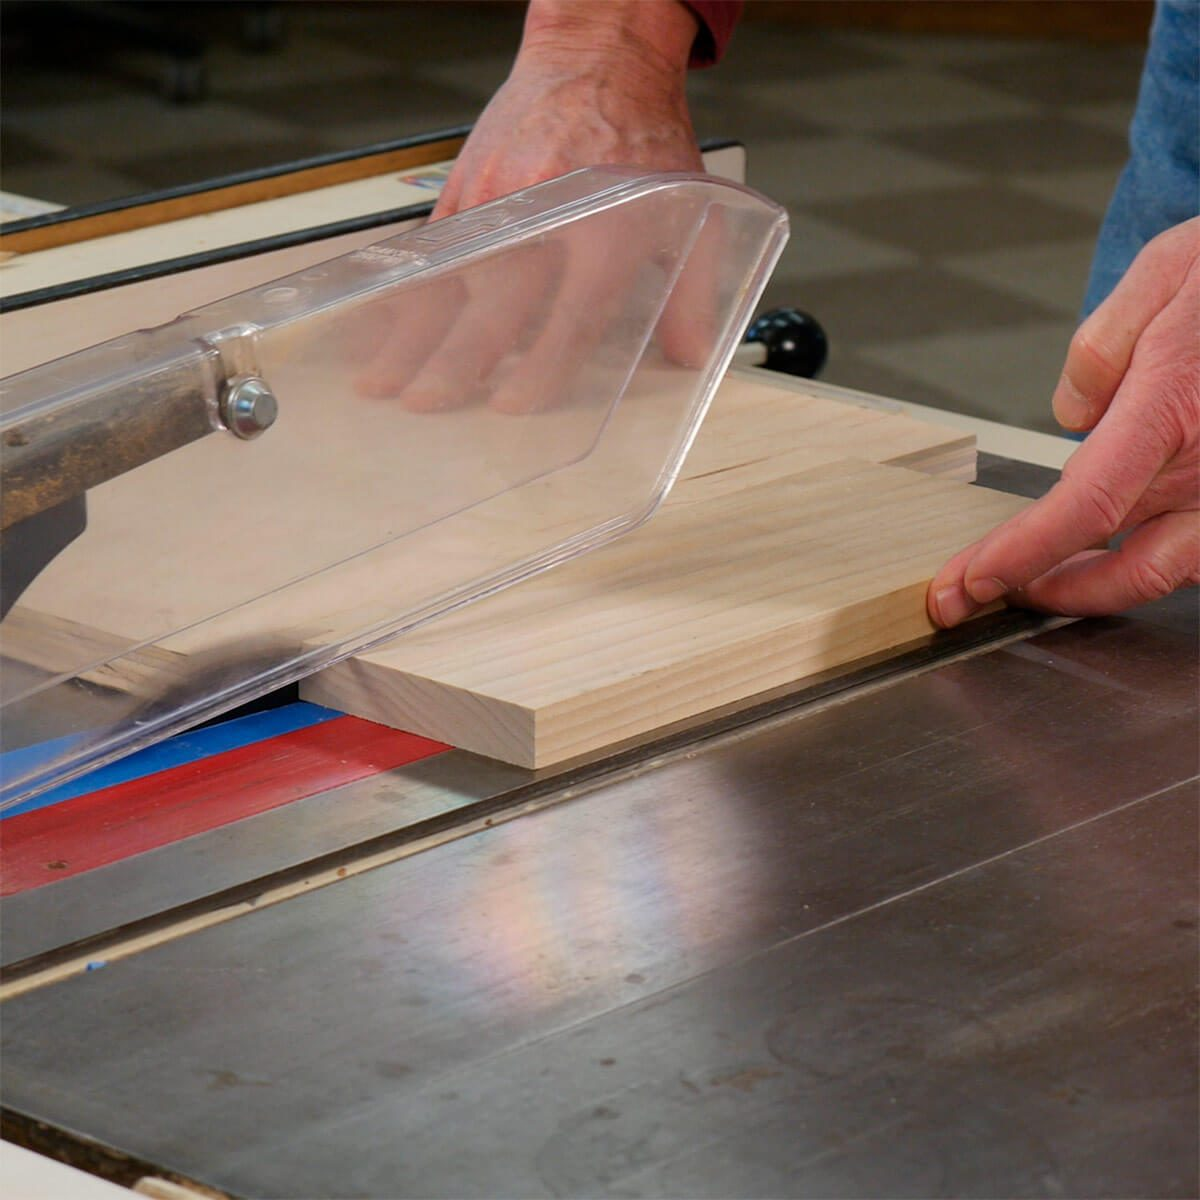 cutting narrow strips on a table saw